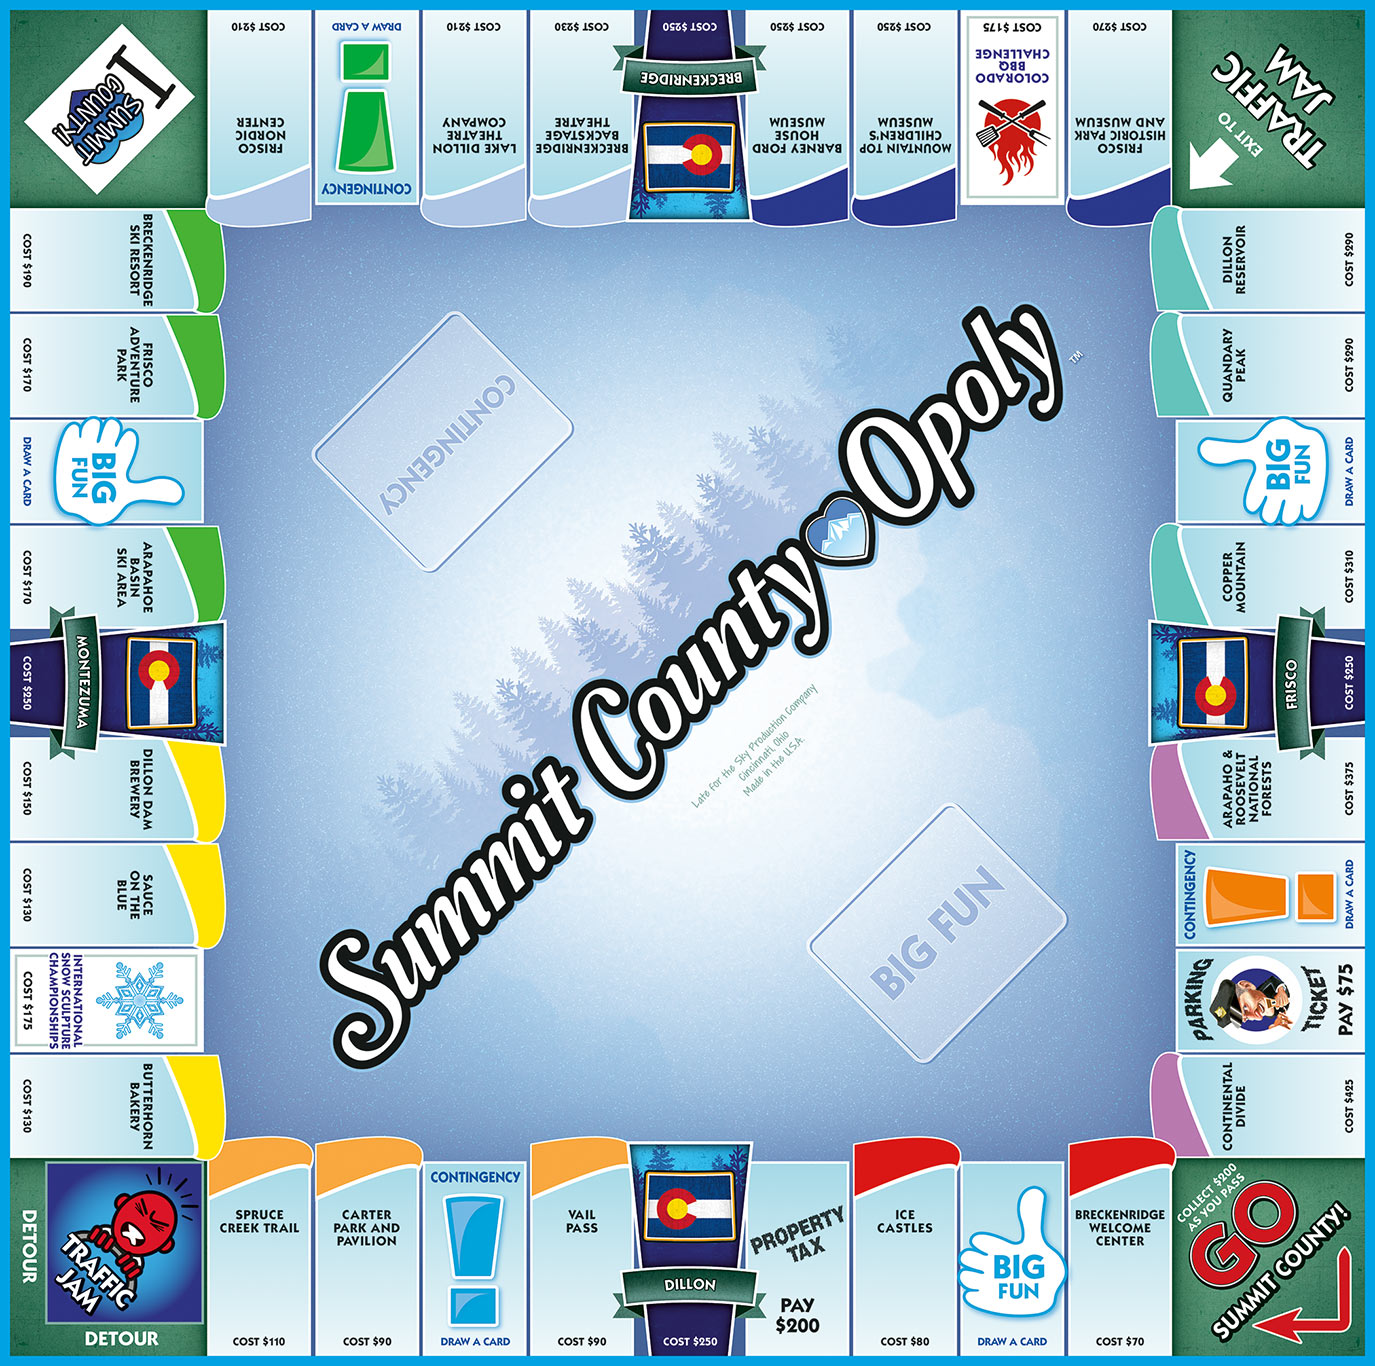 SUMMIT COUNTY-OPOLY Board Game